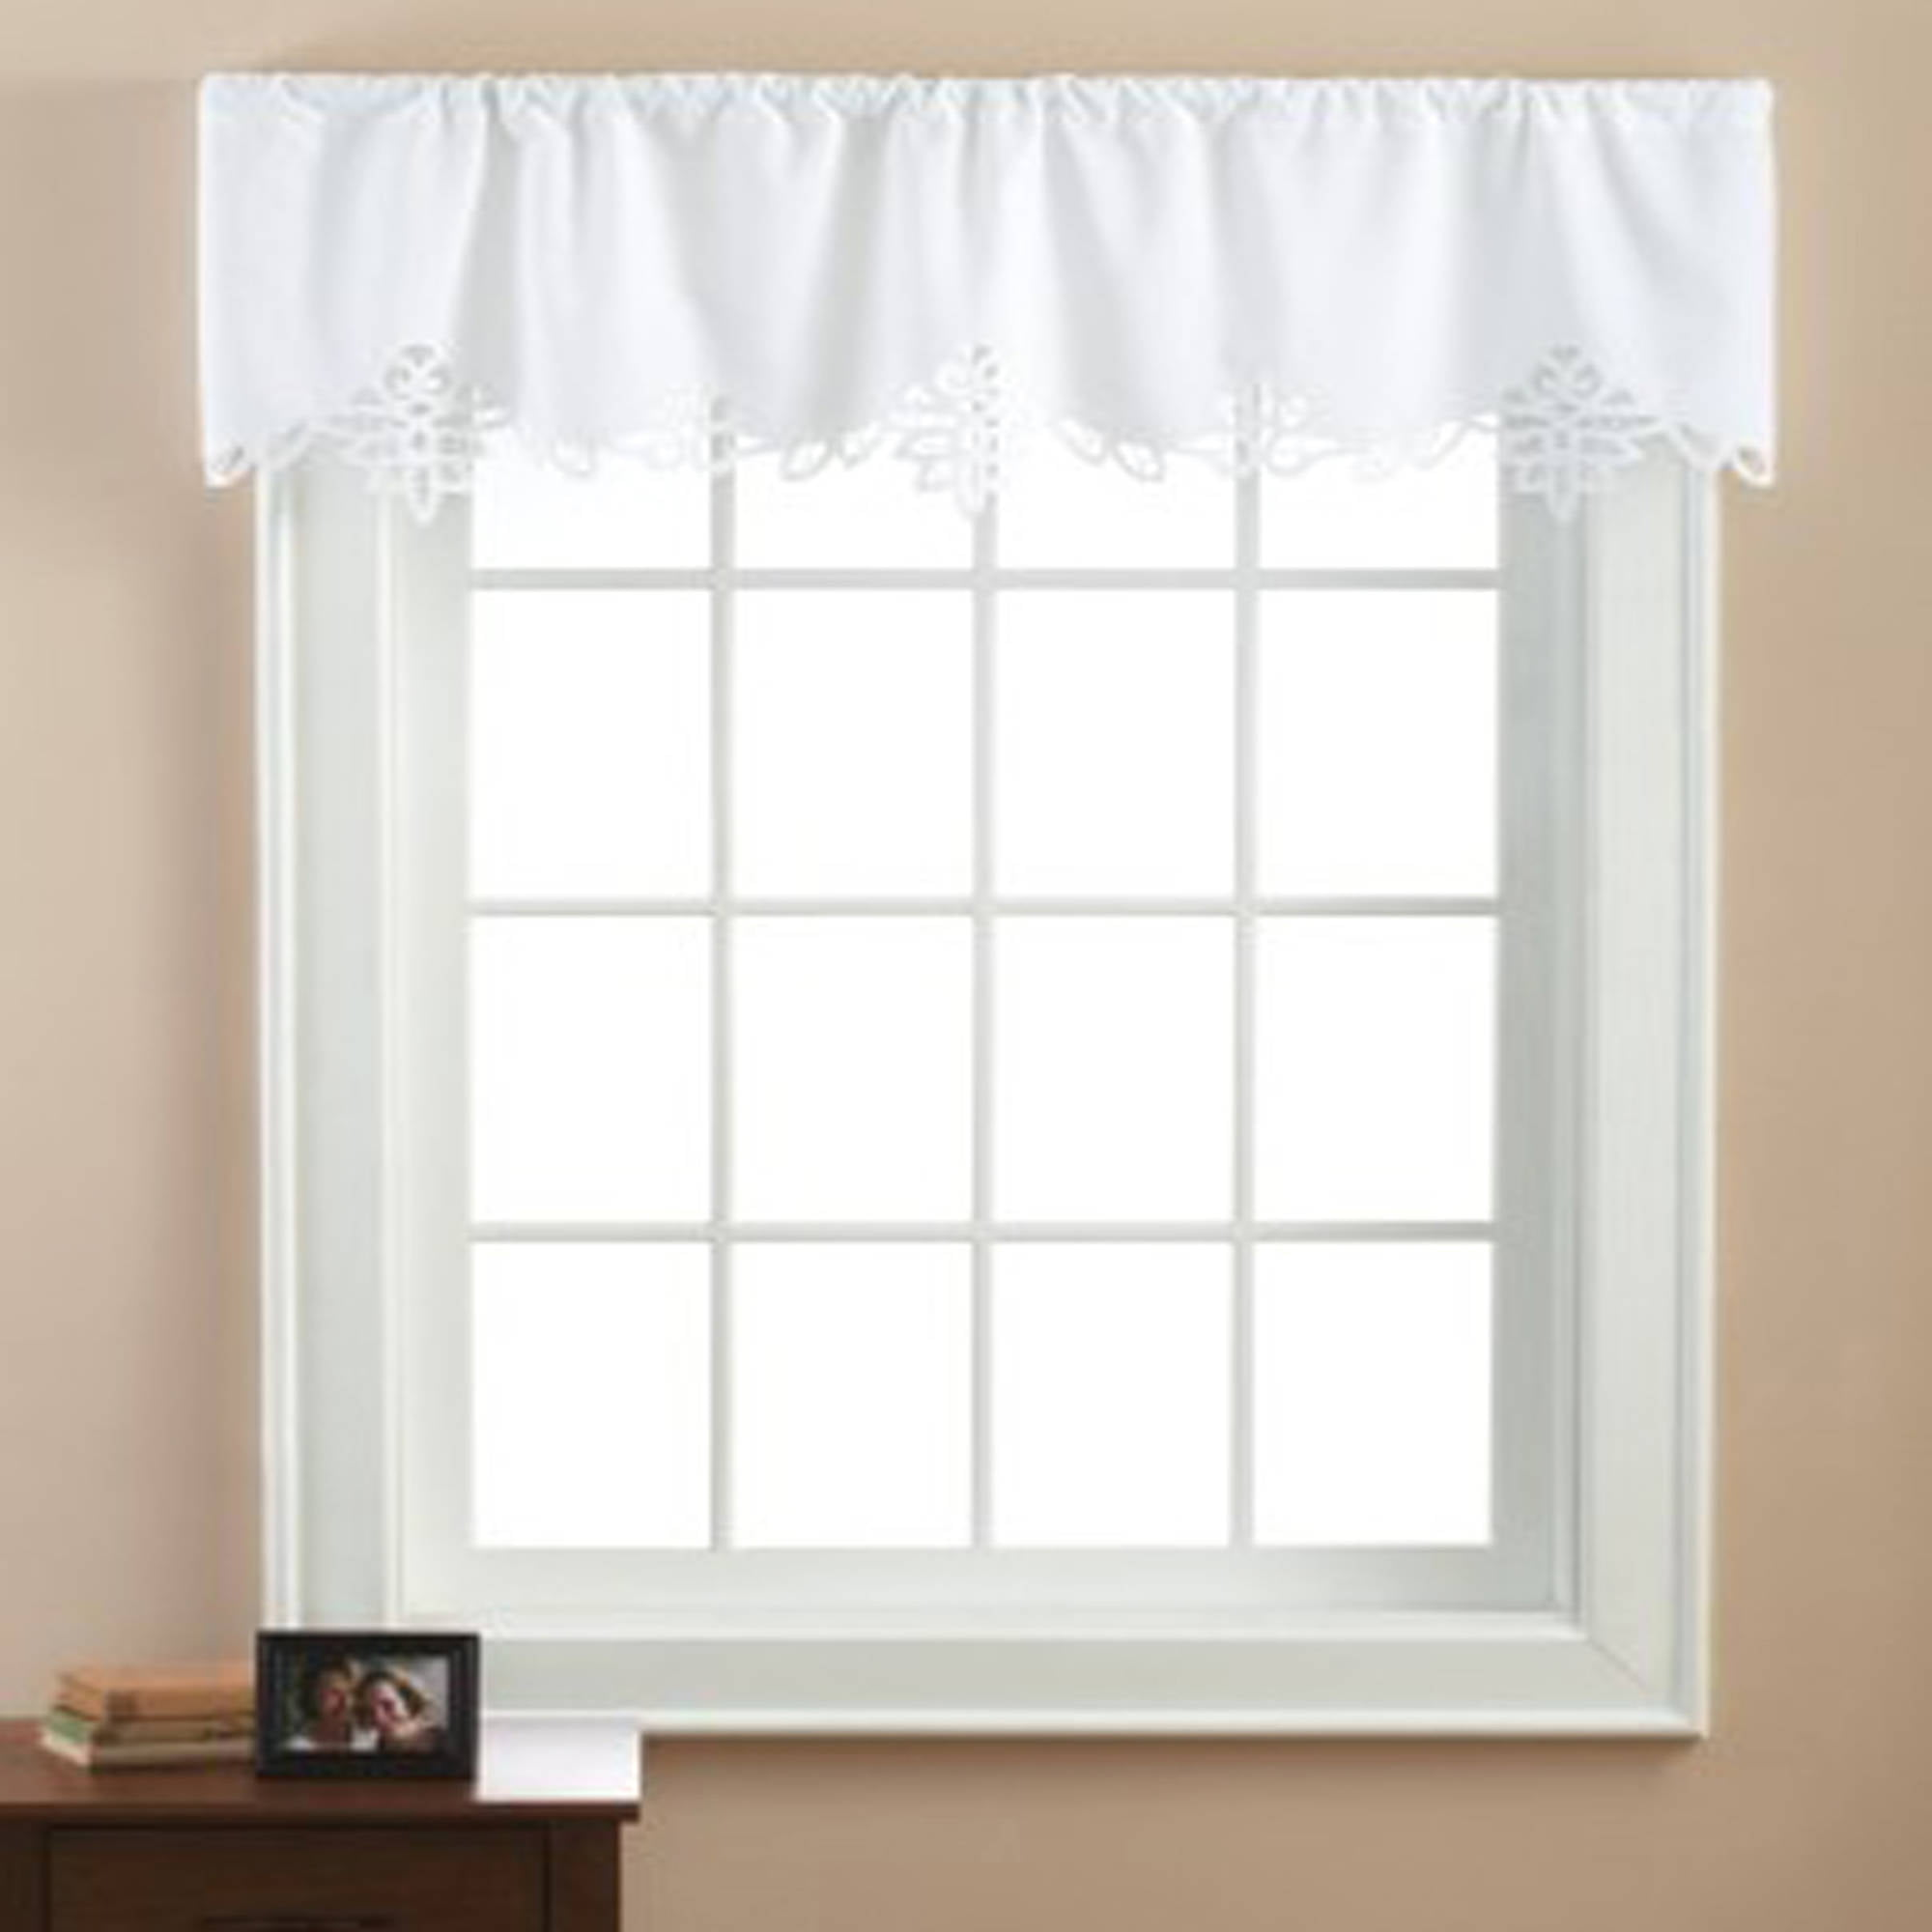 Beautiful Mainstays Battenburg White Lace Window Valance   Walmart.com